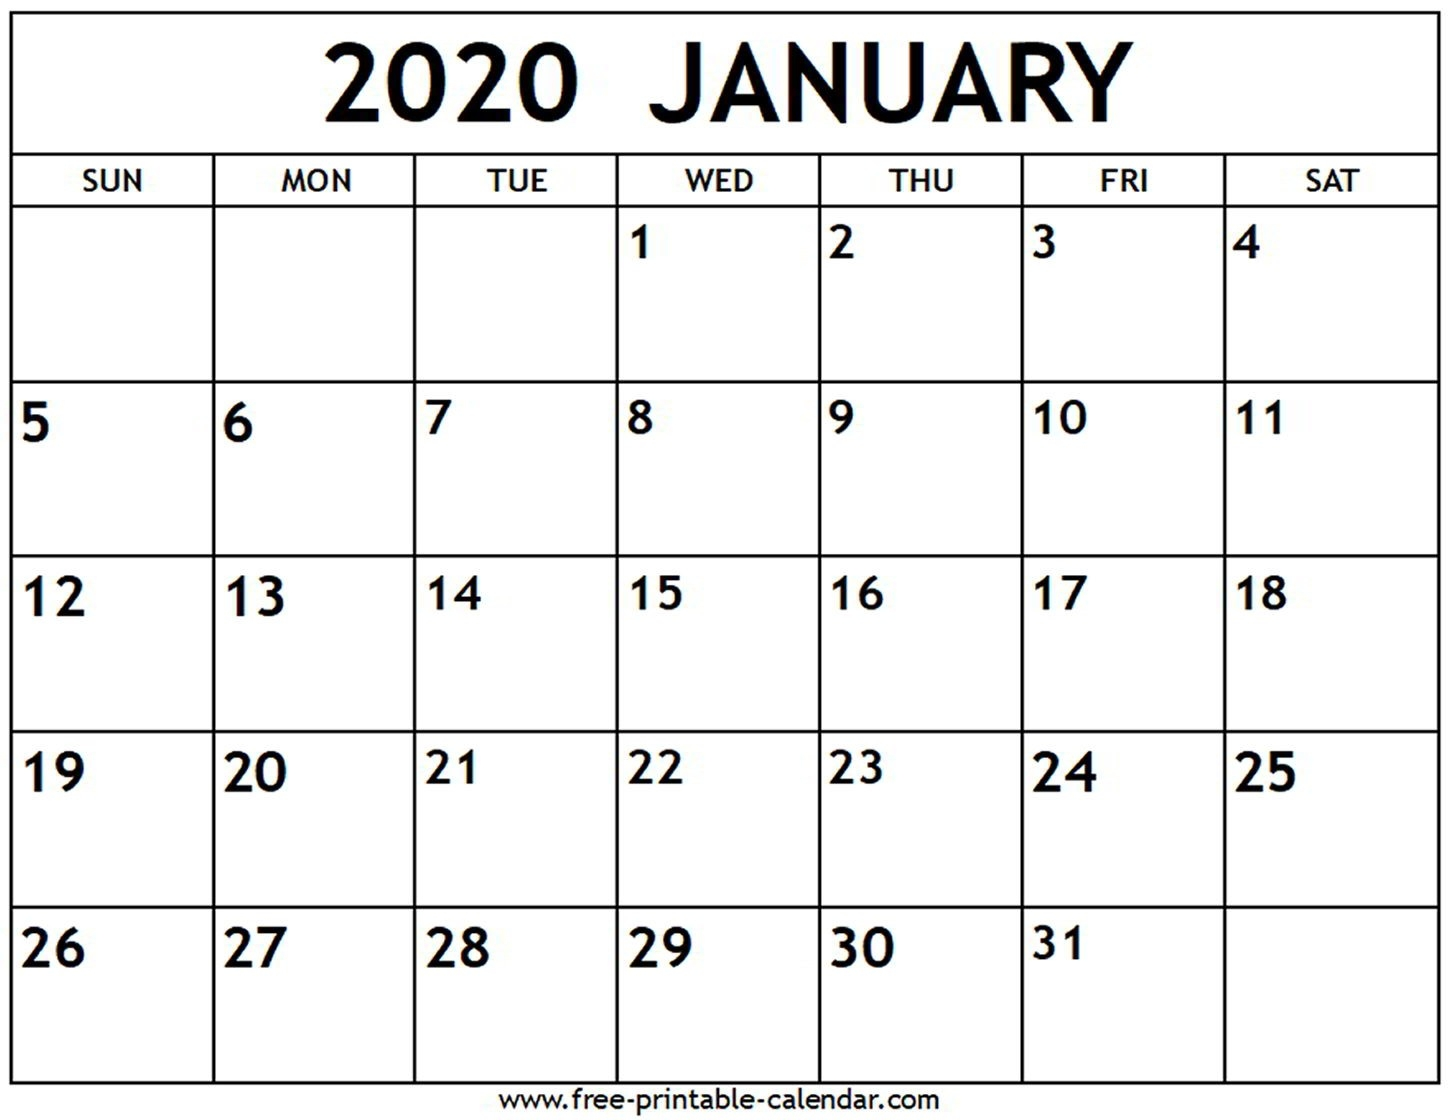 January 2020 Calendar - Free-Printable-Calendar-January 2020 Calendar With Notes